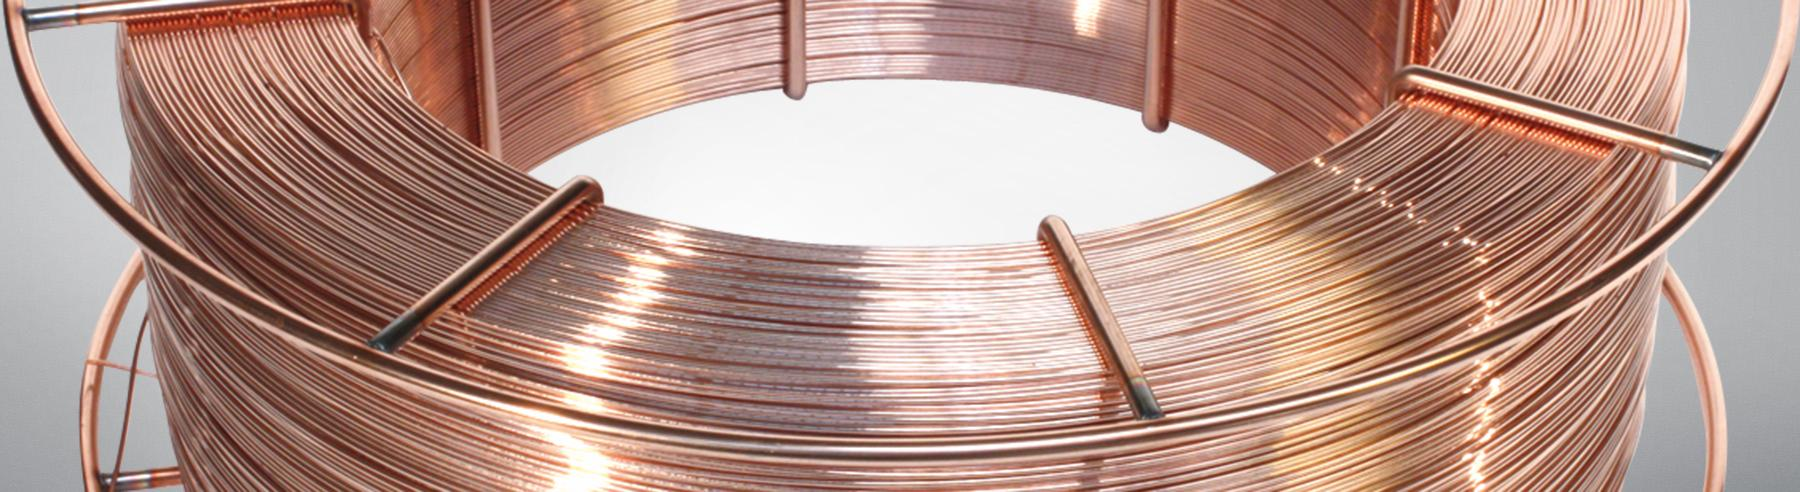 Welding wires, electrodes, additives